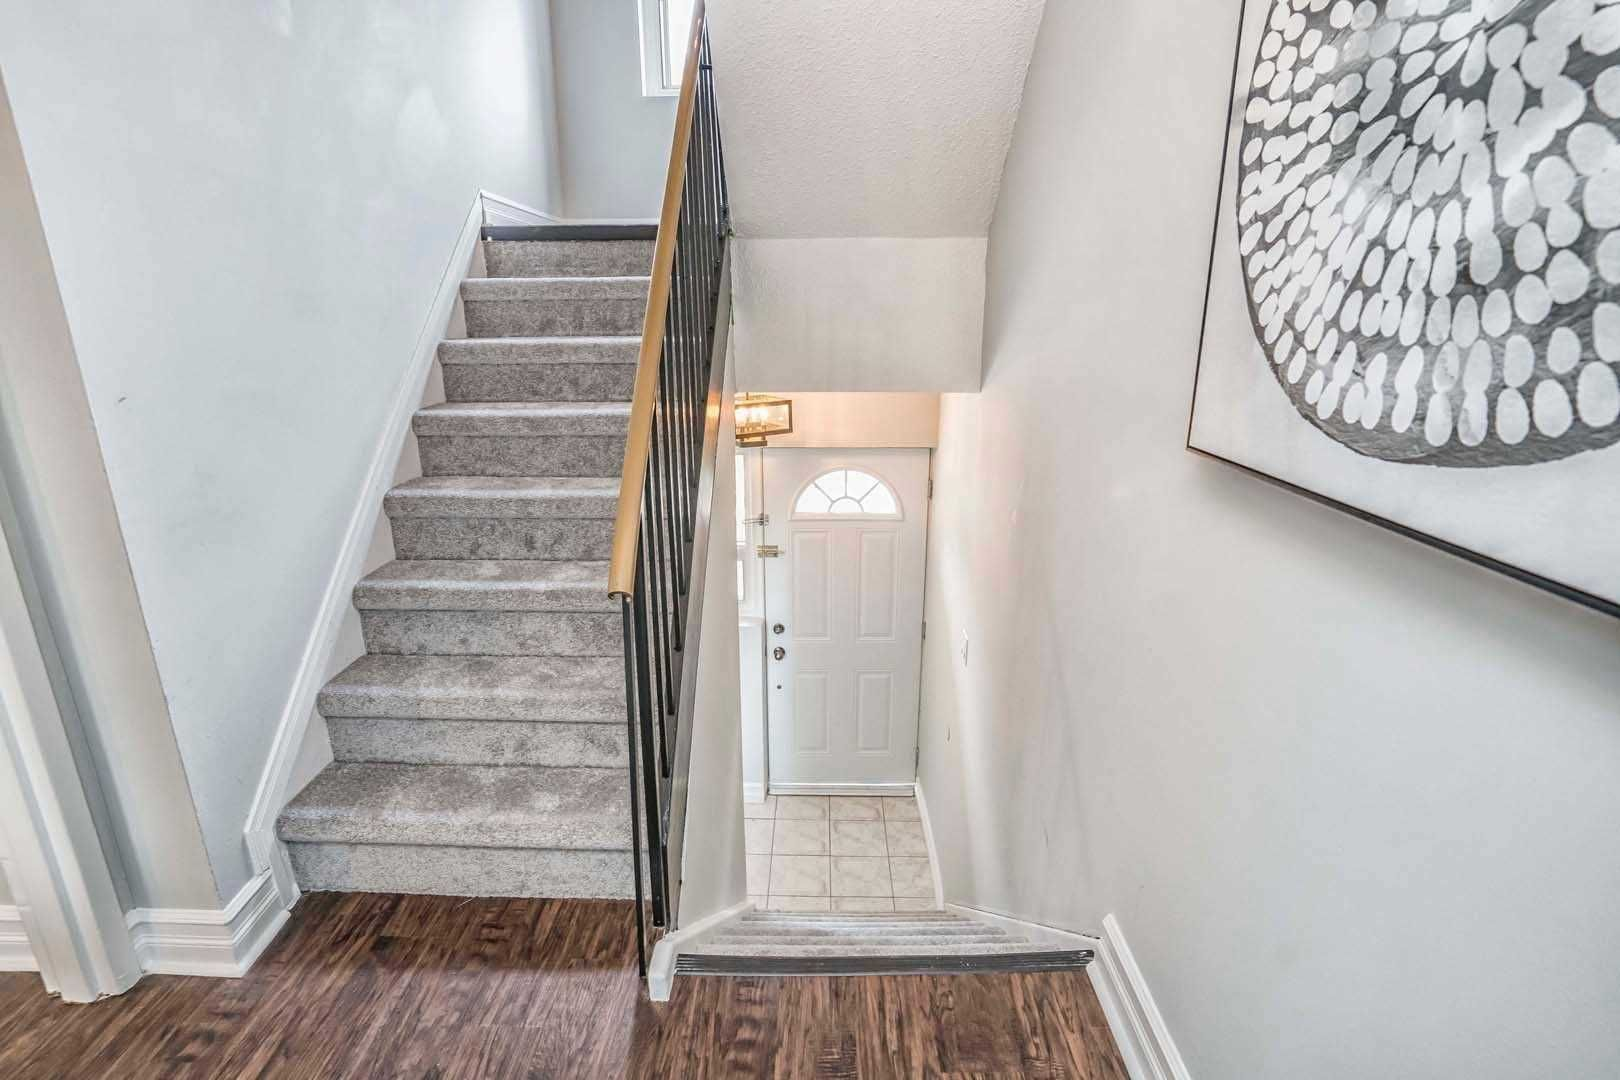 91 Muir Dr, unit 88 for sale in Toronto - image #2